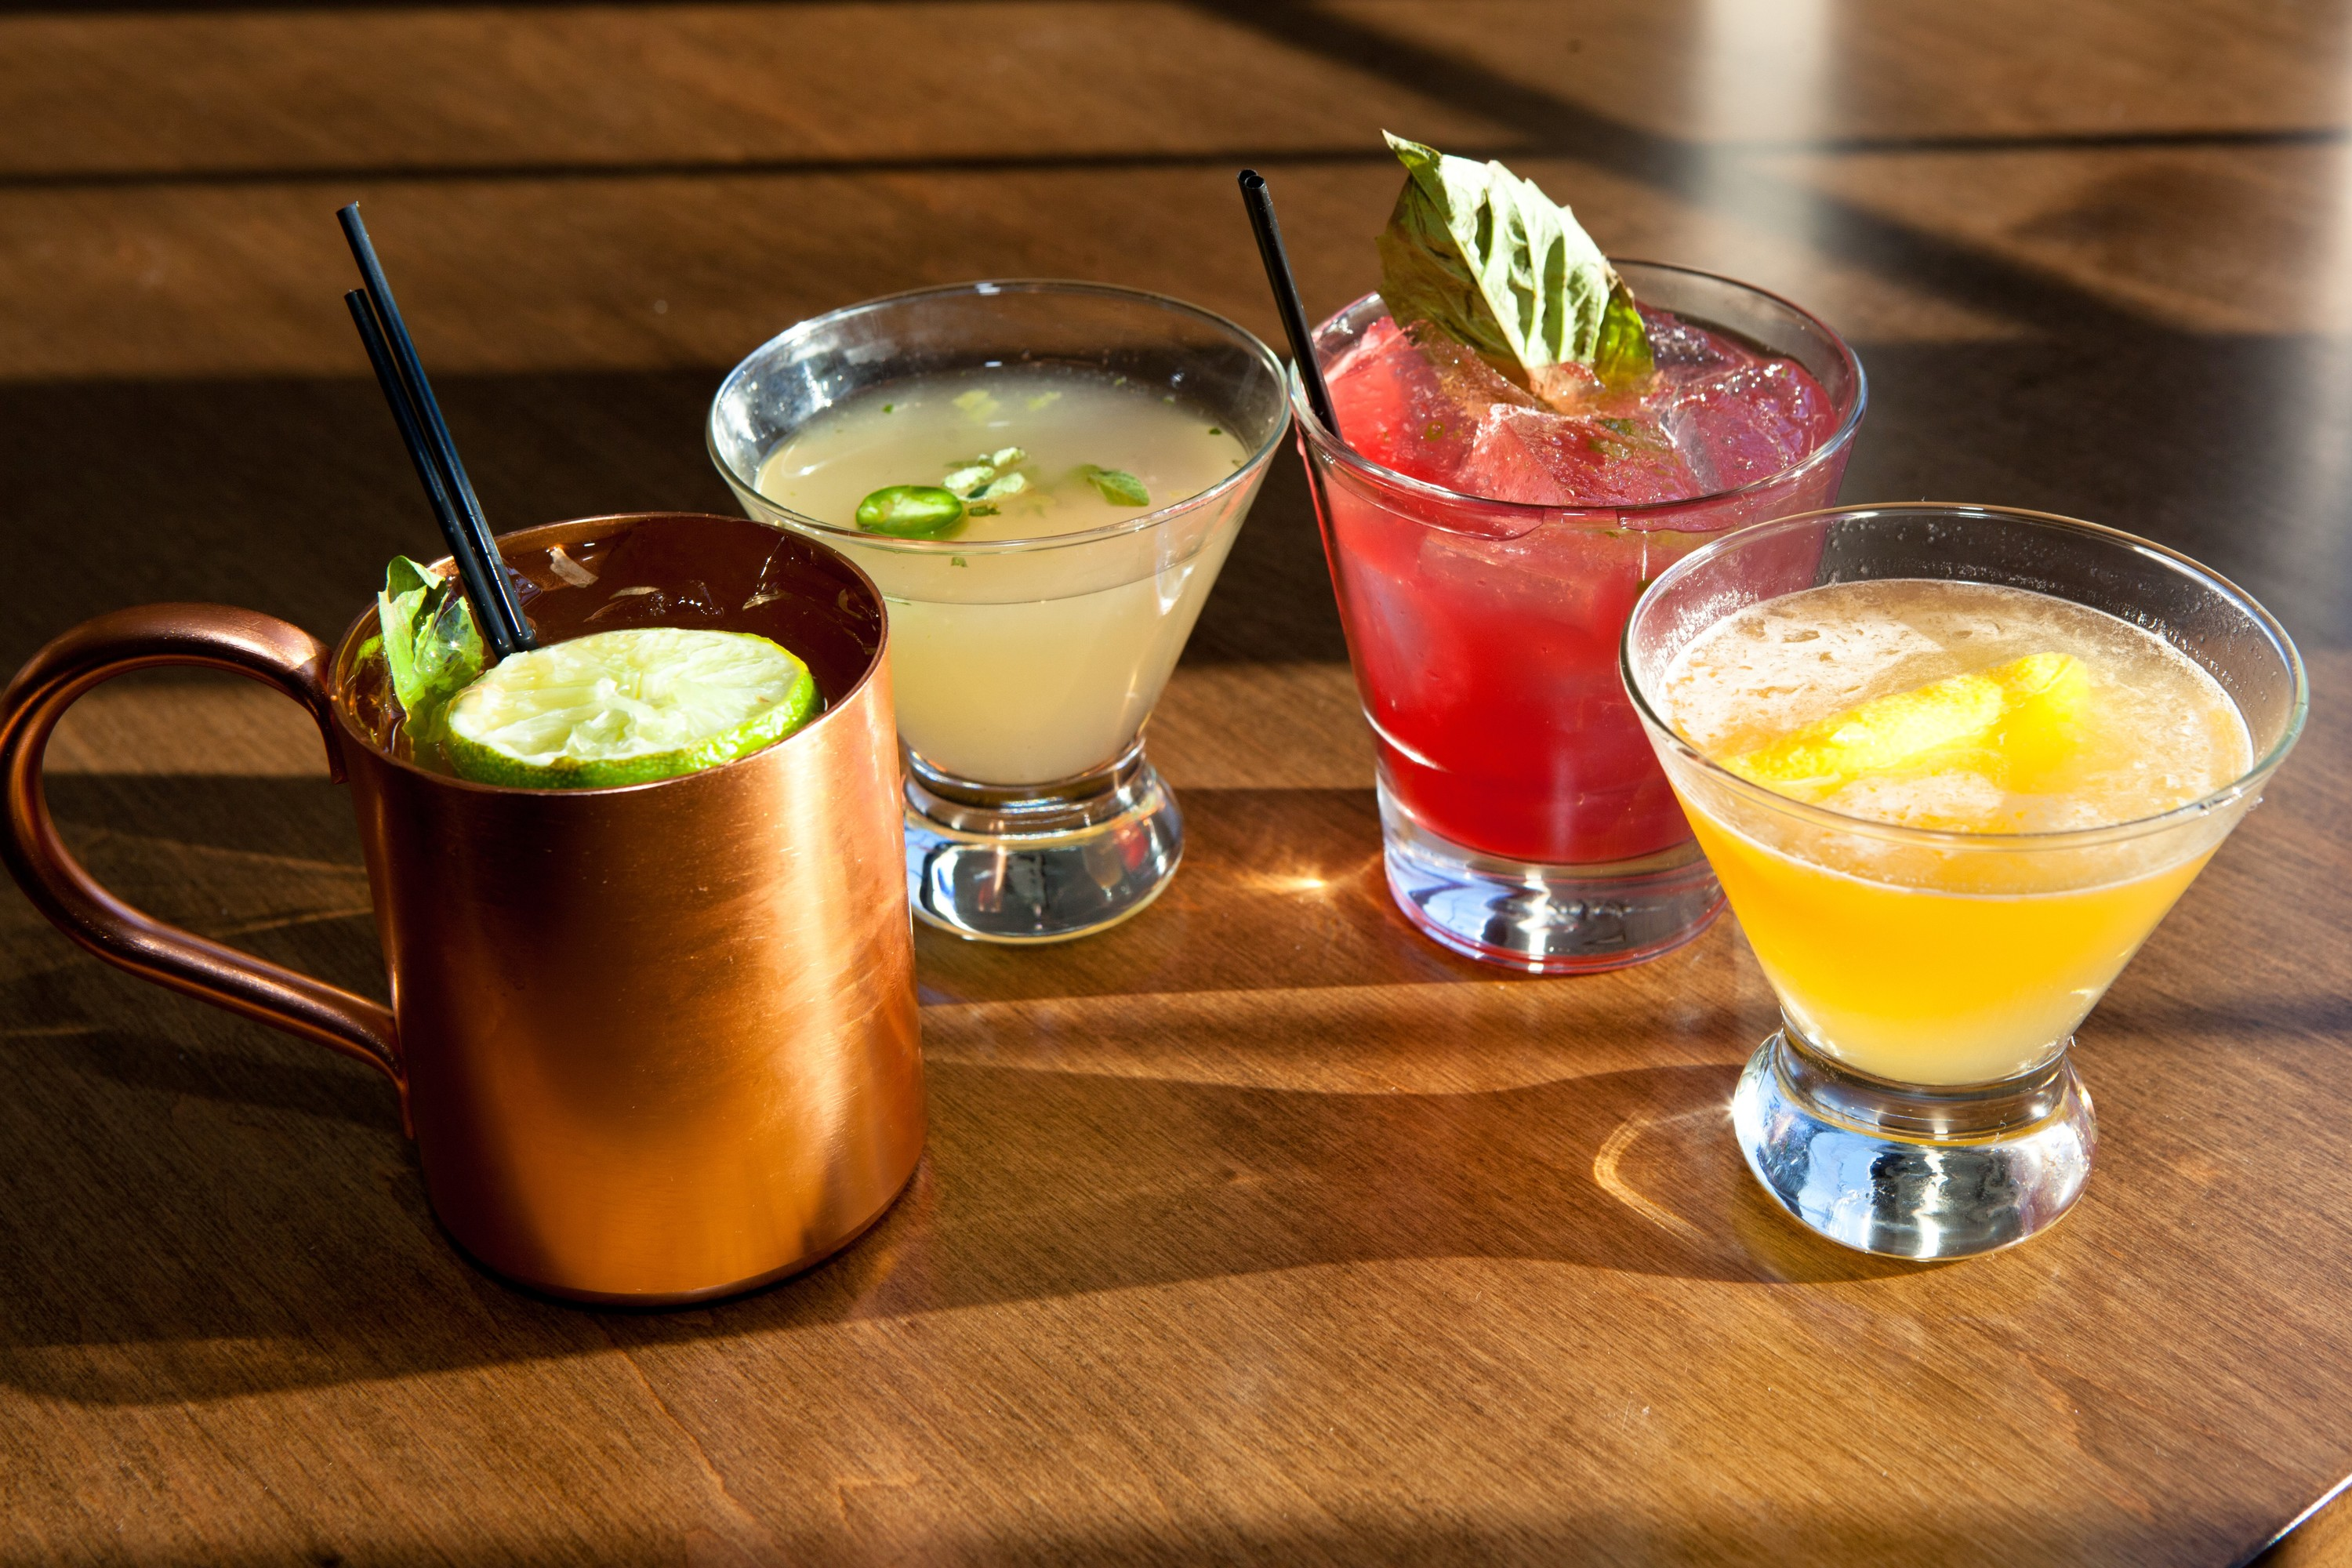 Where to find Happy Hour specials in Chicago